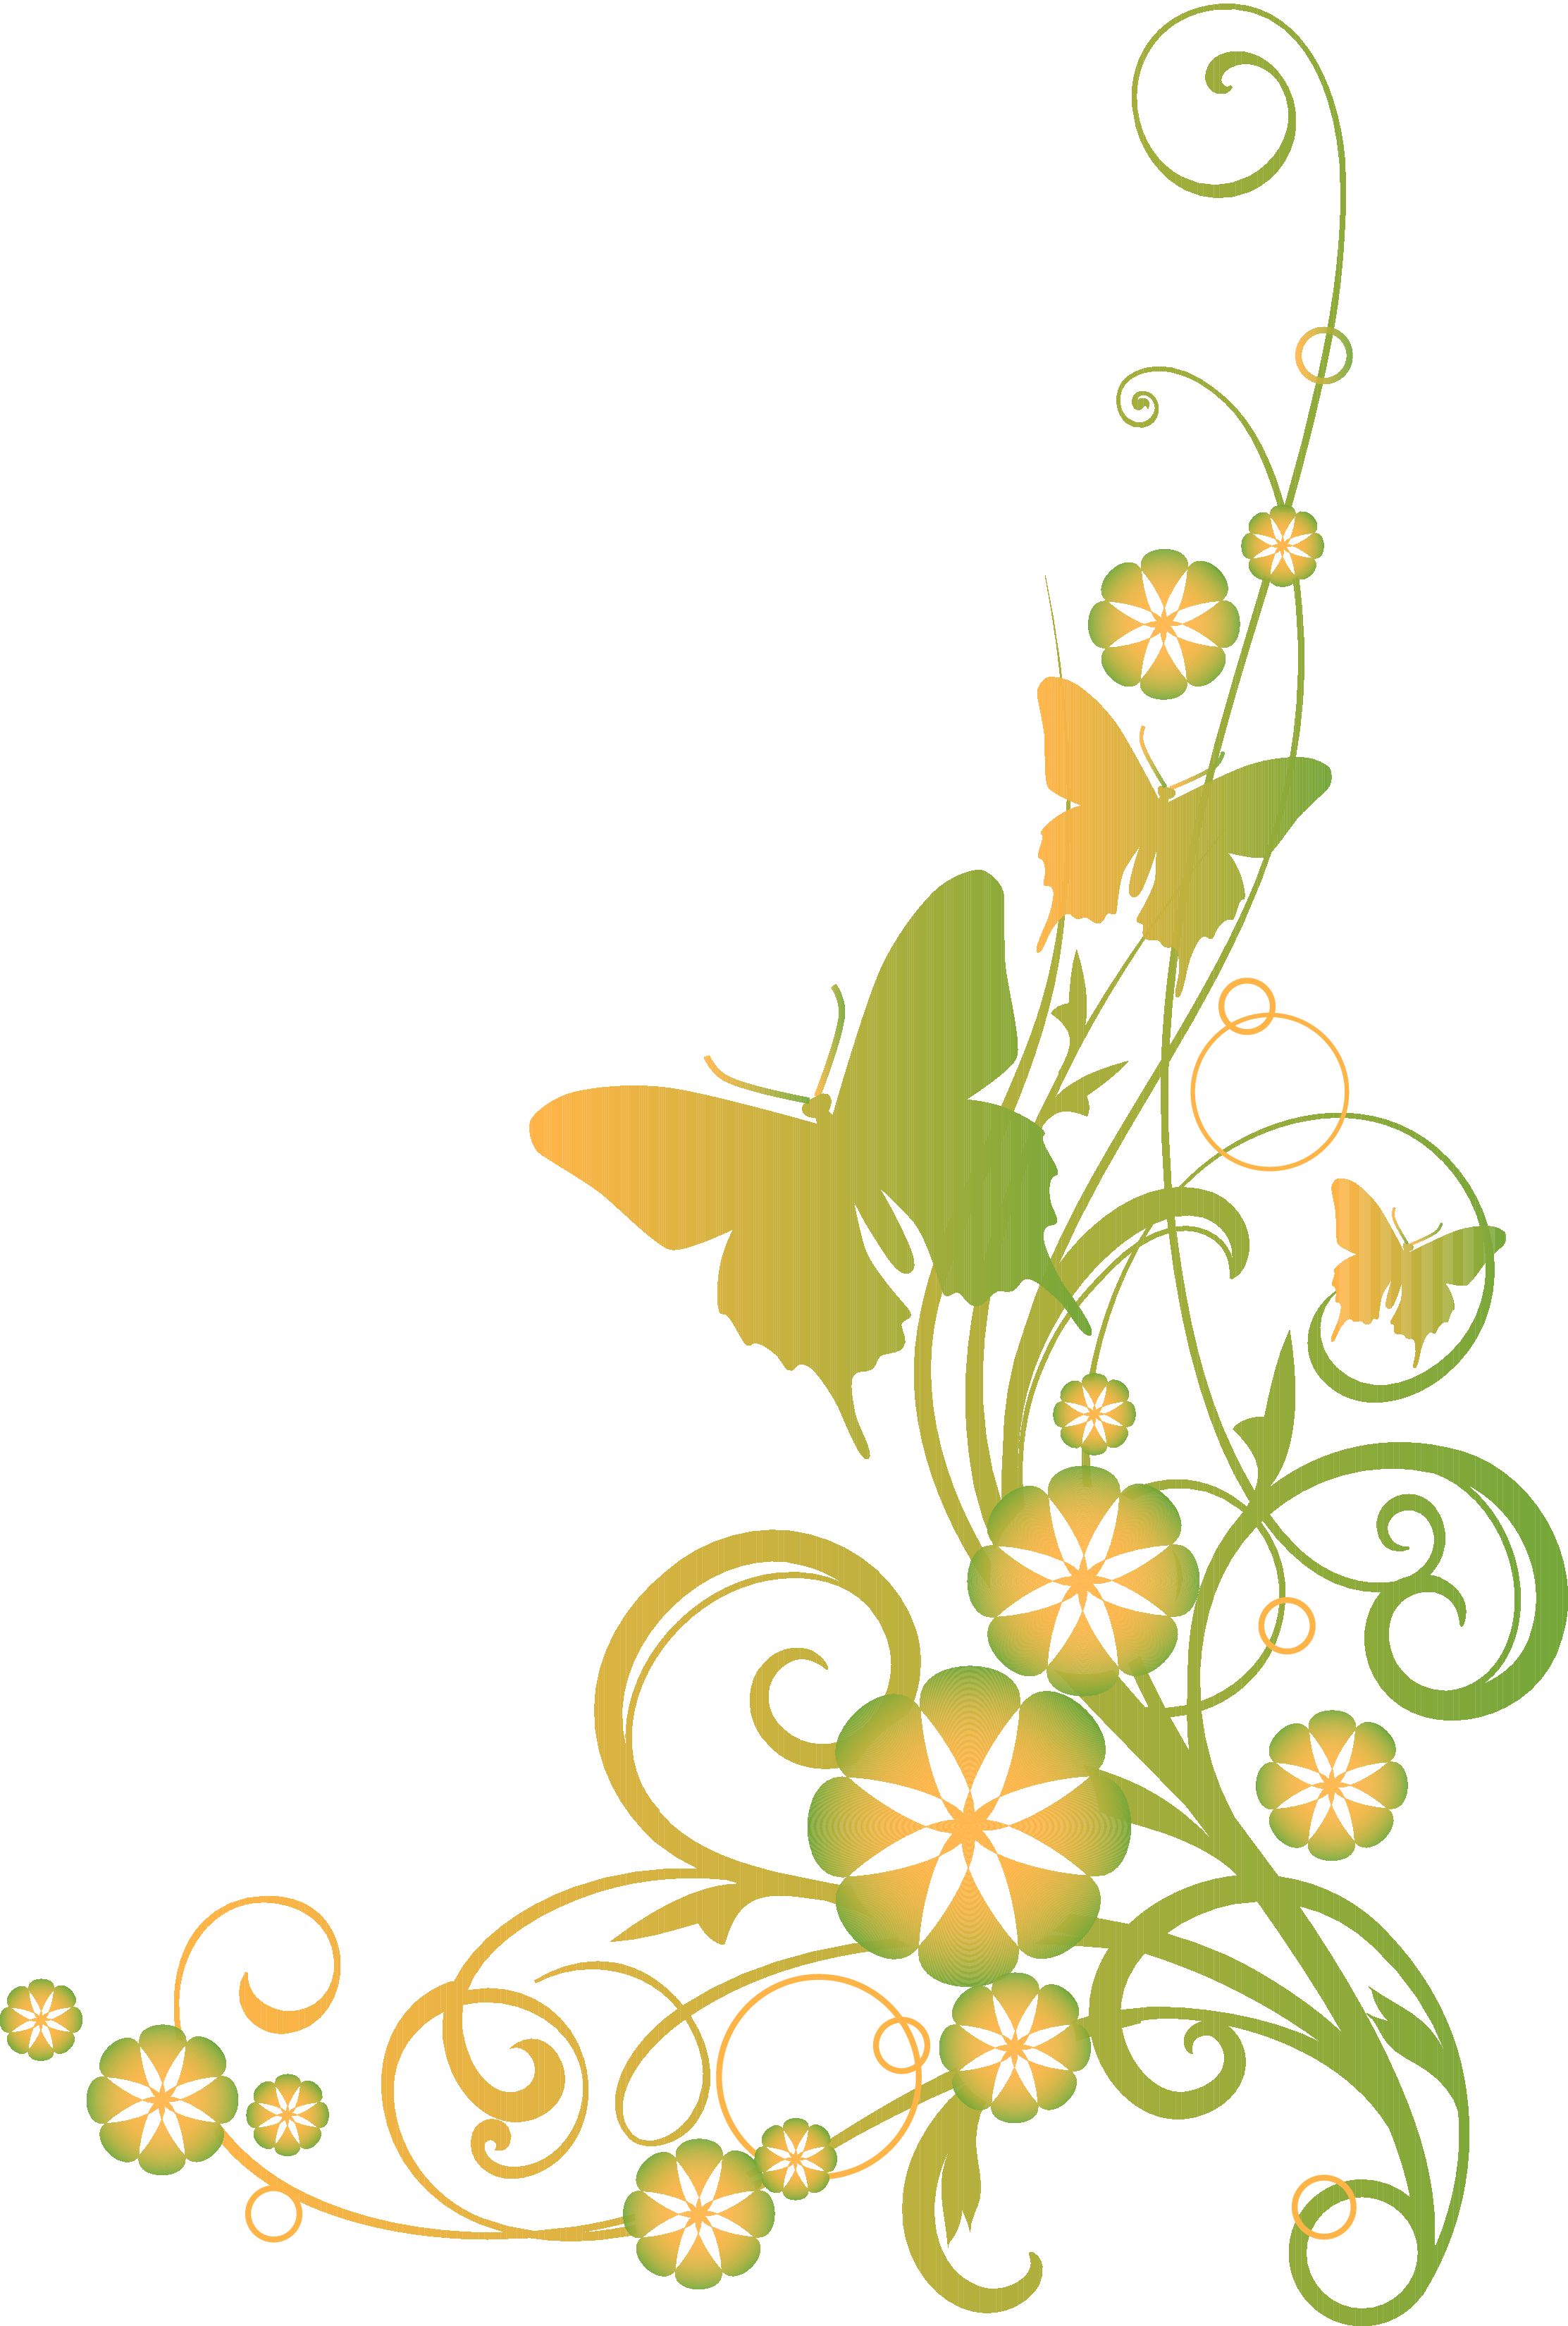 Flower vines clipart clipart royalty free download Religious Clip Art | Vines and Butterflies Christian Clipart ... clipart royalty free download